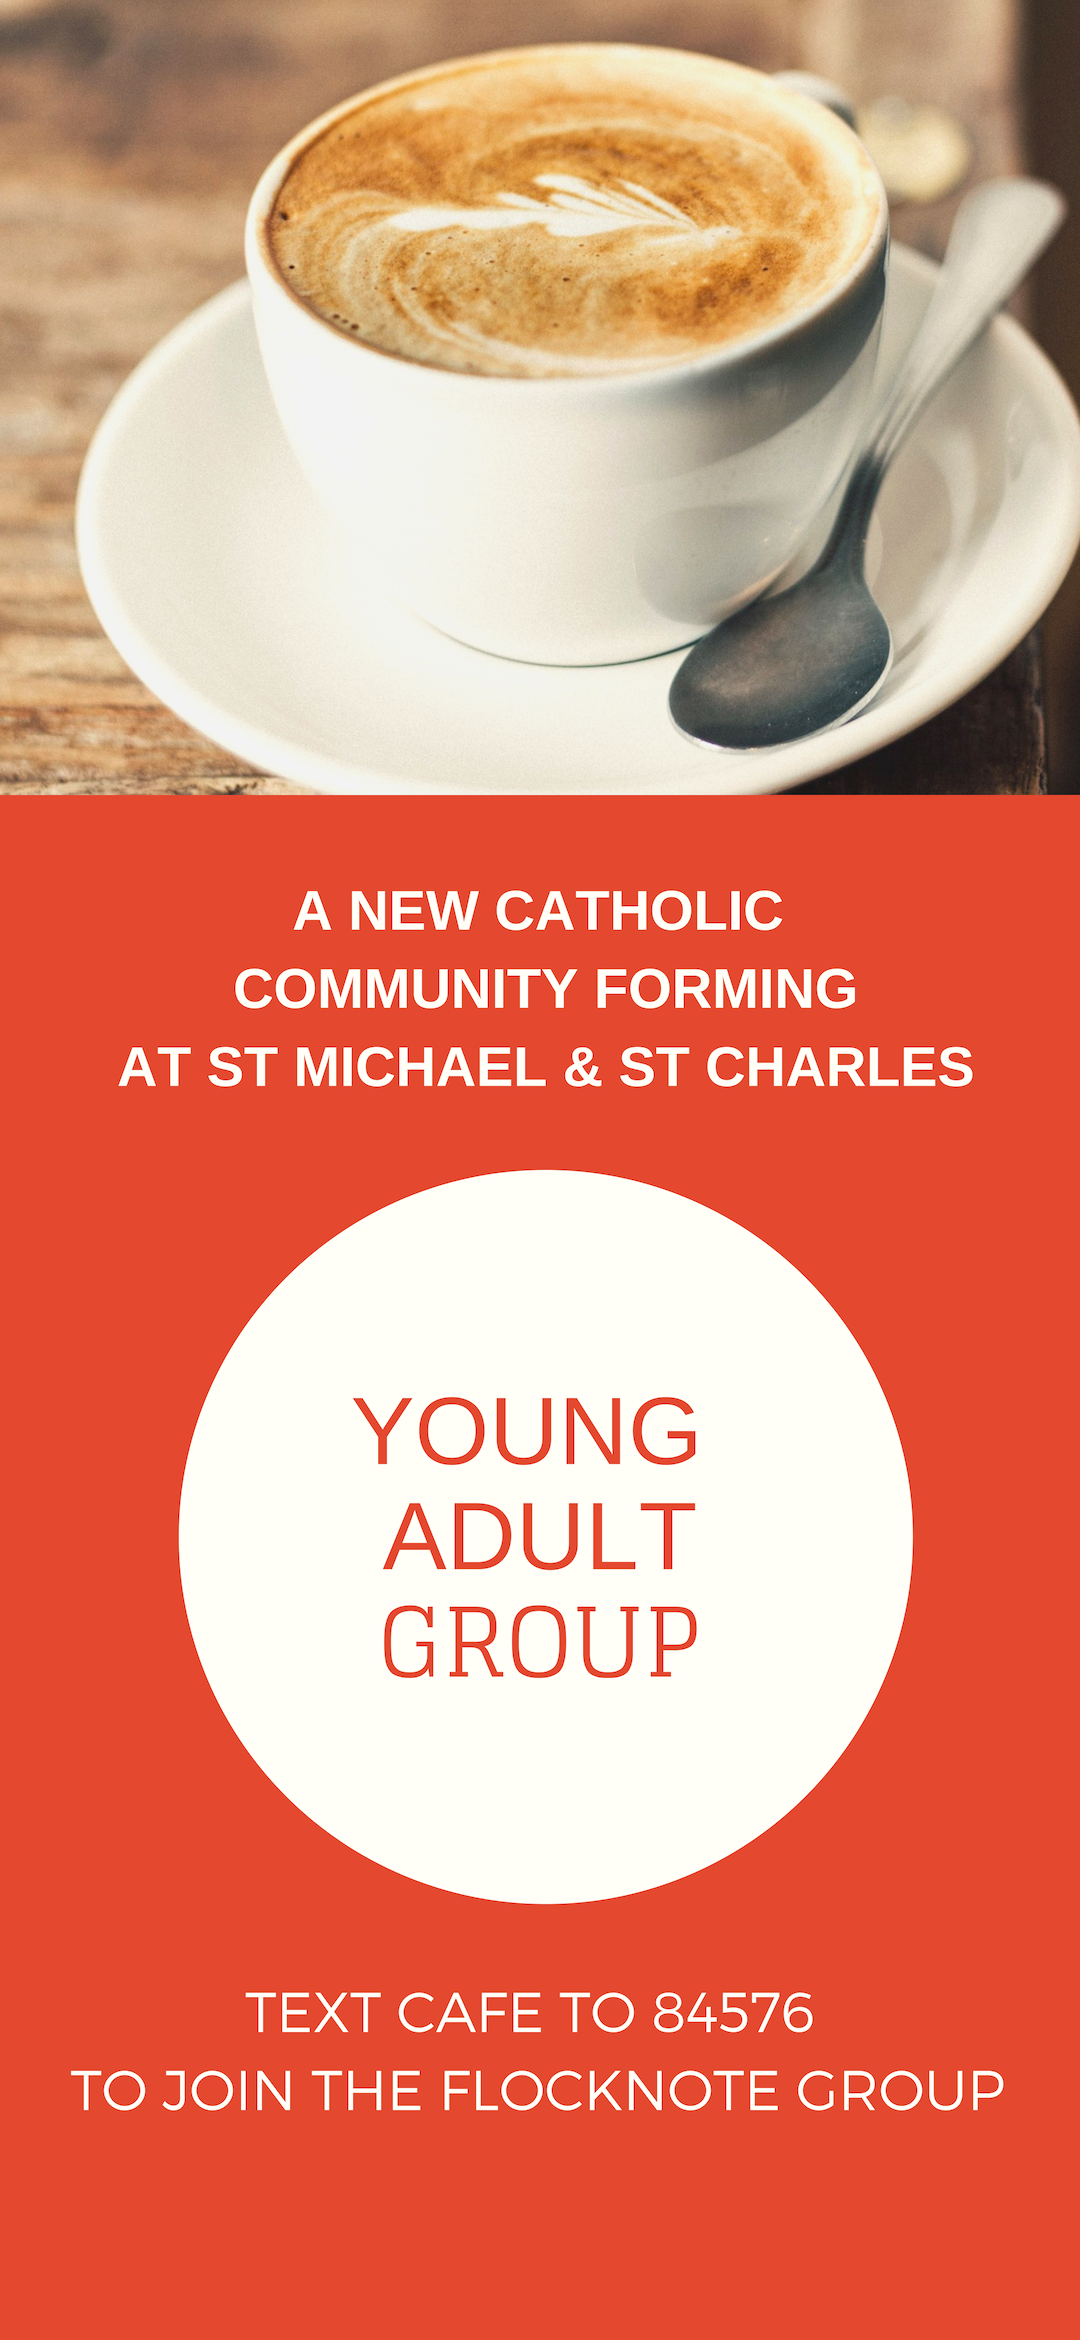 Snapchat Young Adult Group Revised